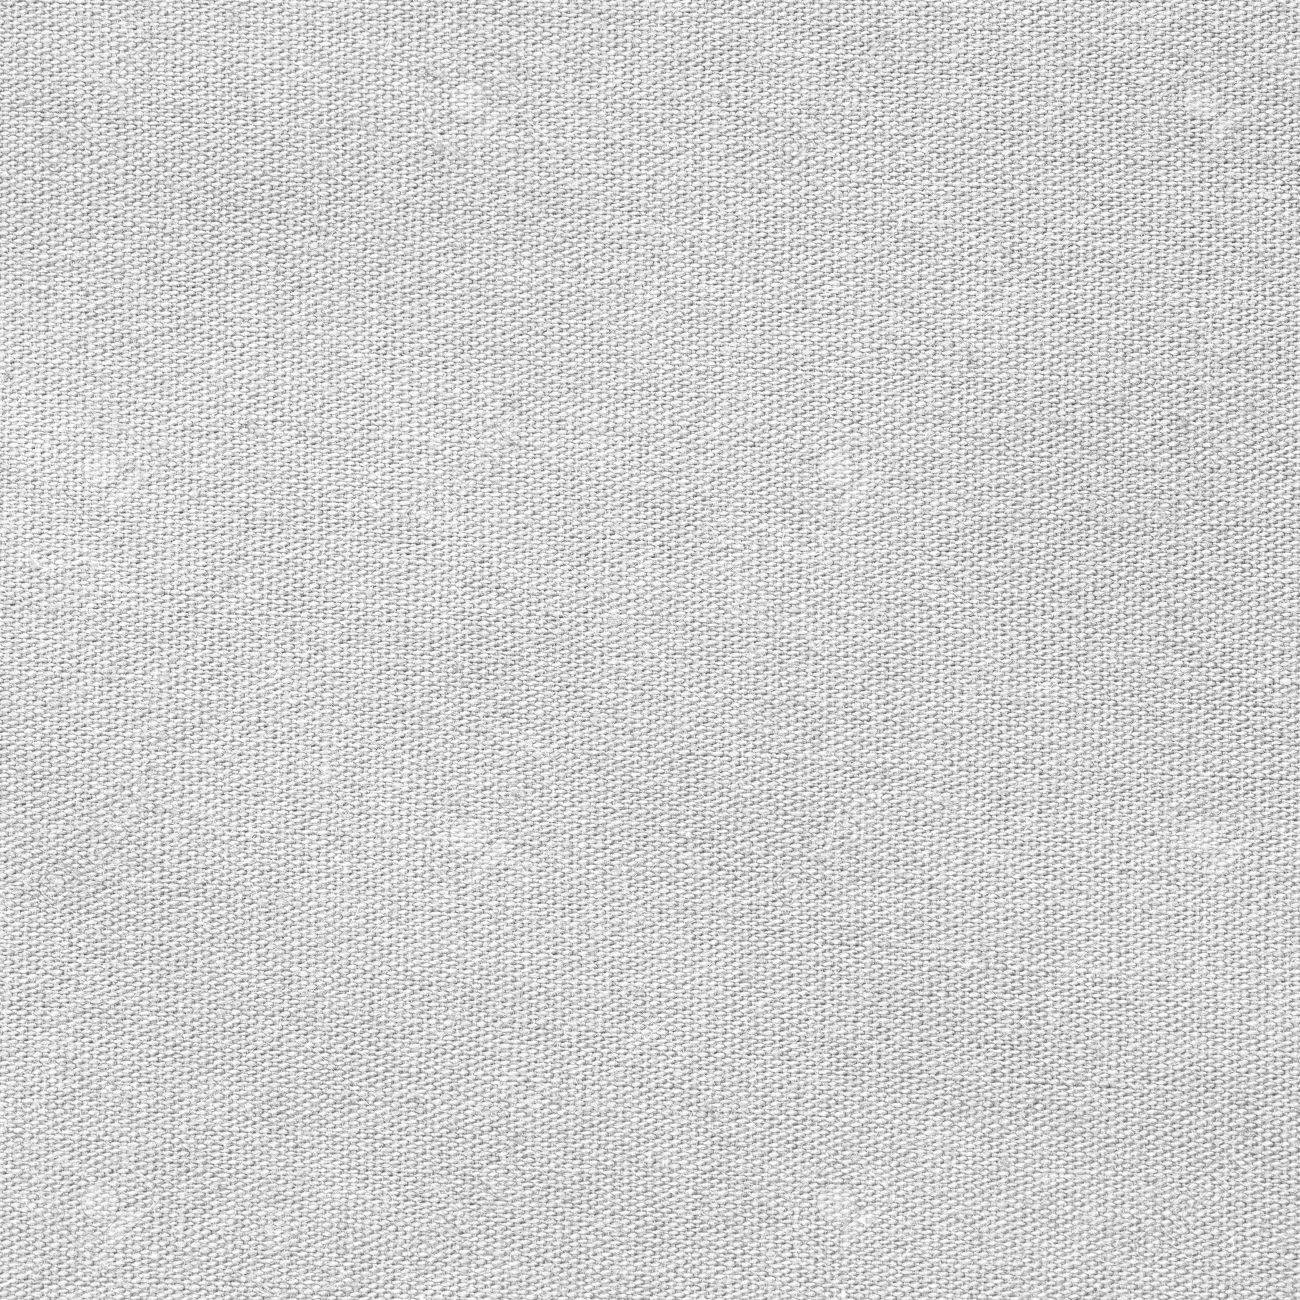 Detail Of White Fabric Texture And Seamless Background Stock Photo ... for seamless white fabric textures  183qdu